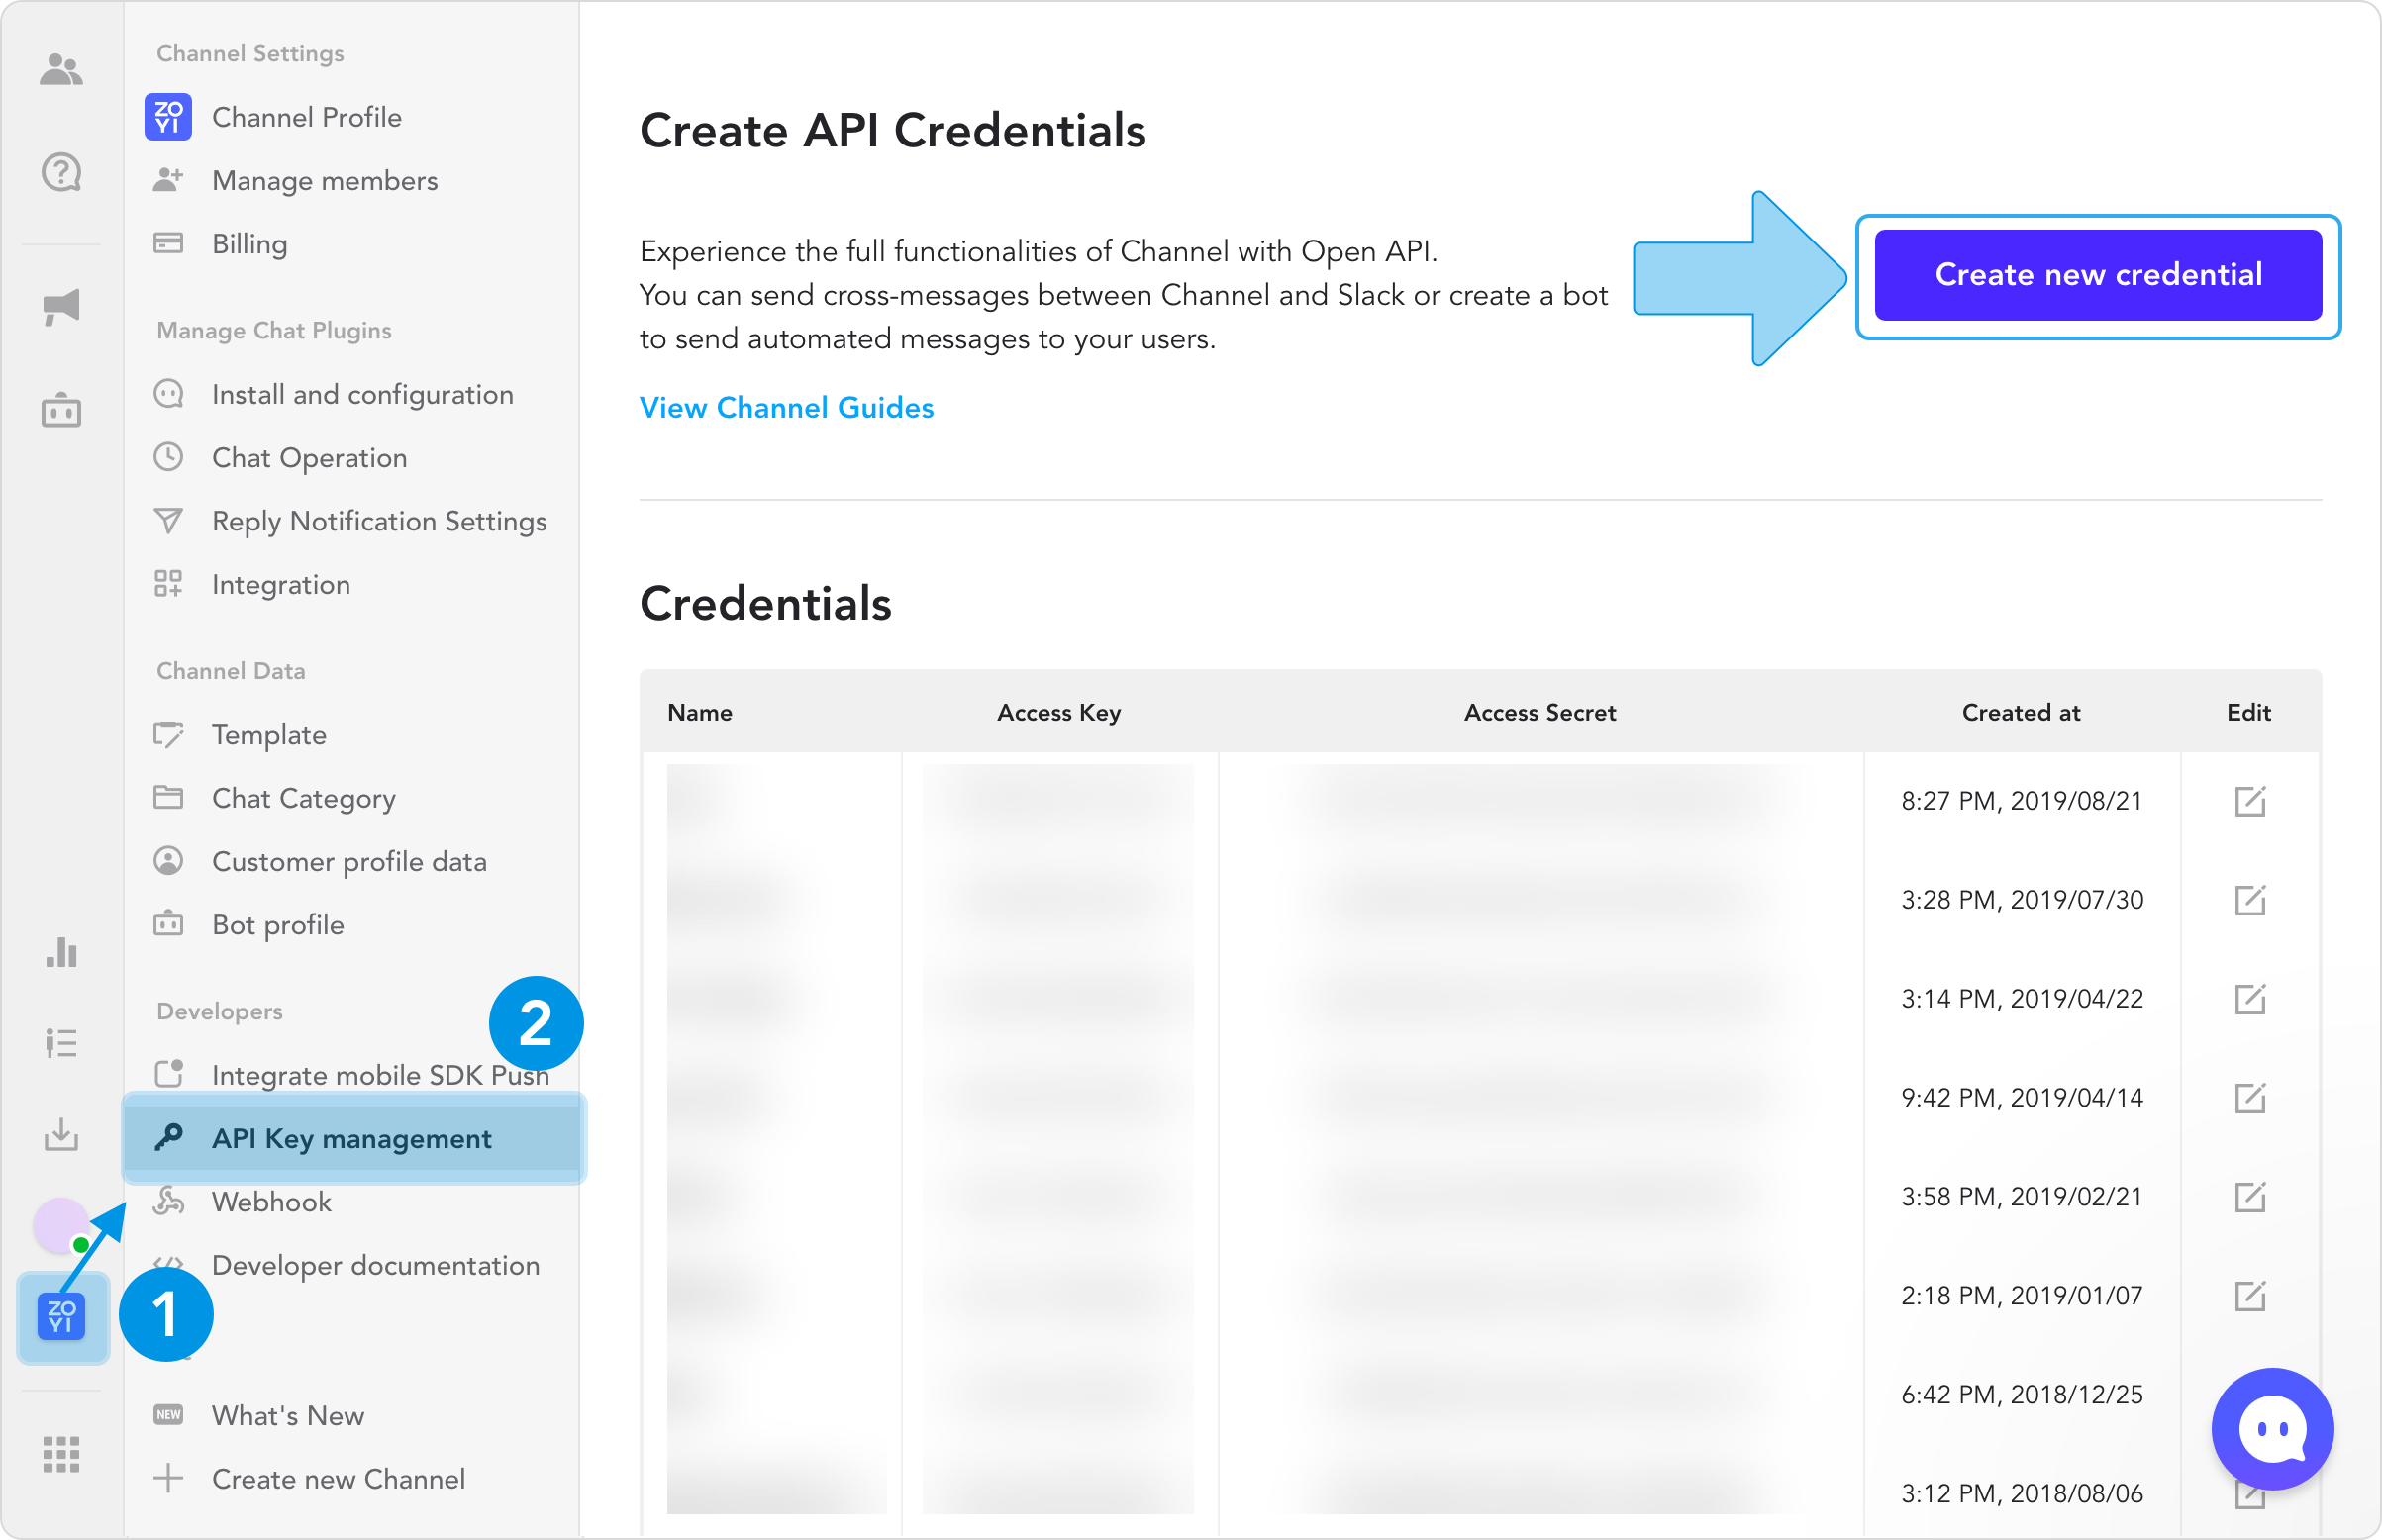 `Settings` > `API Key management` > `Create new credential`